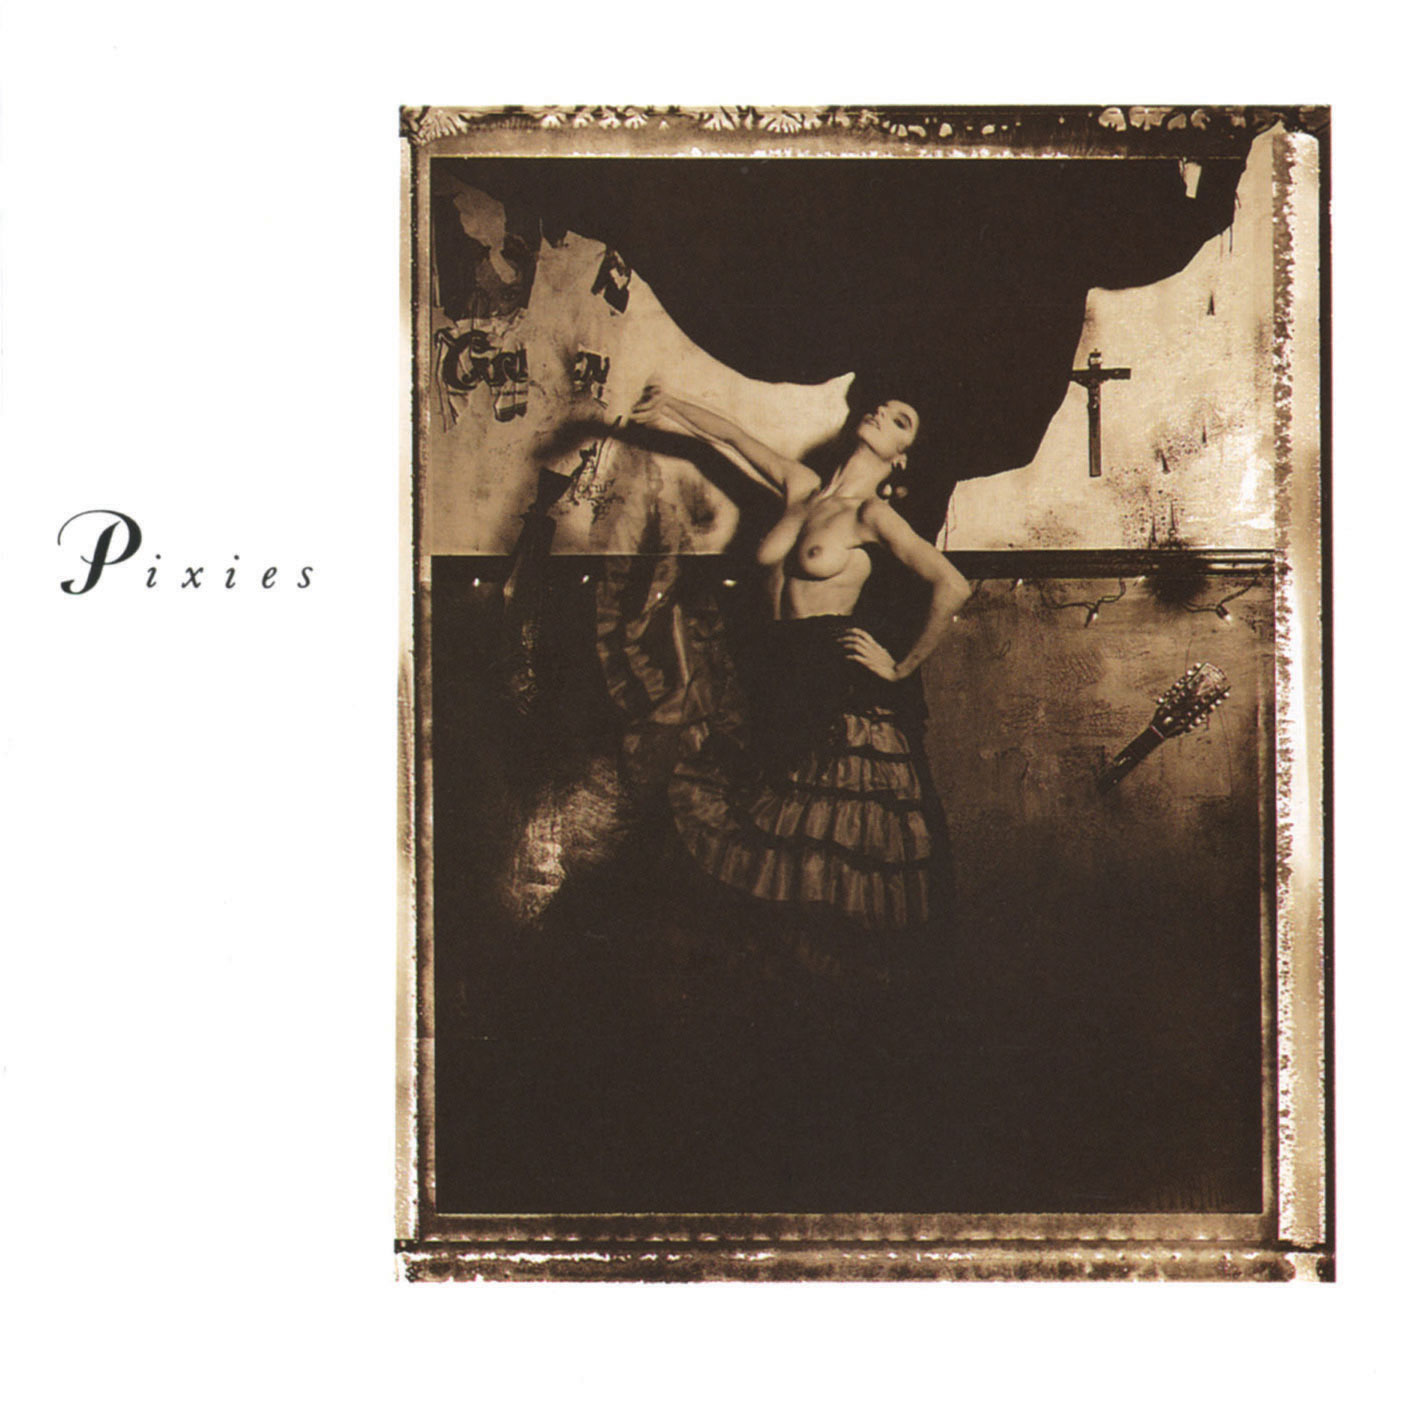 Surfer rosa & Come on pilgrim